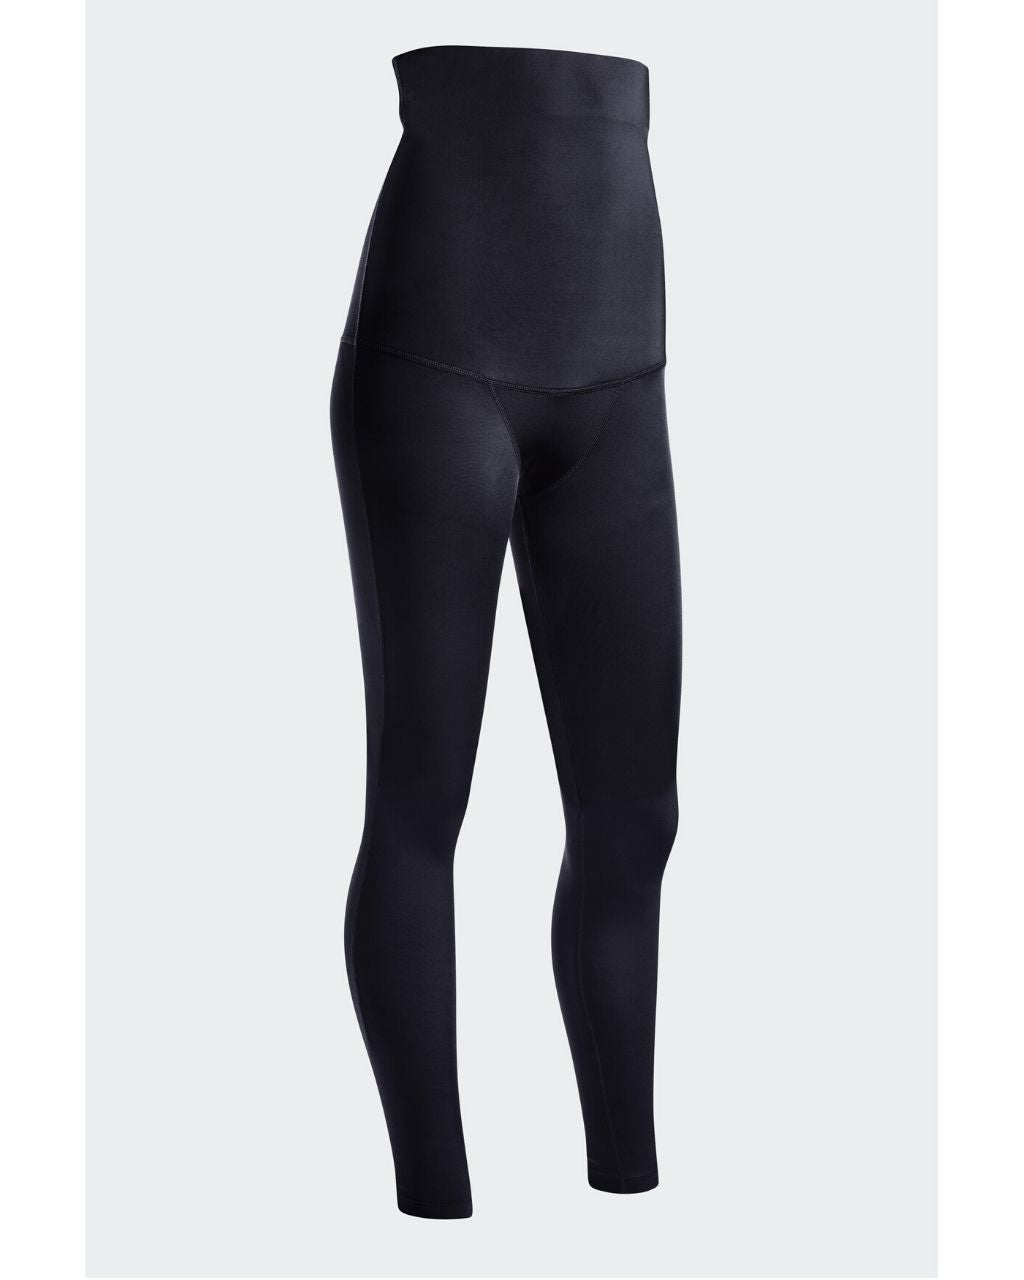 SRC Recovery Leggings - Black